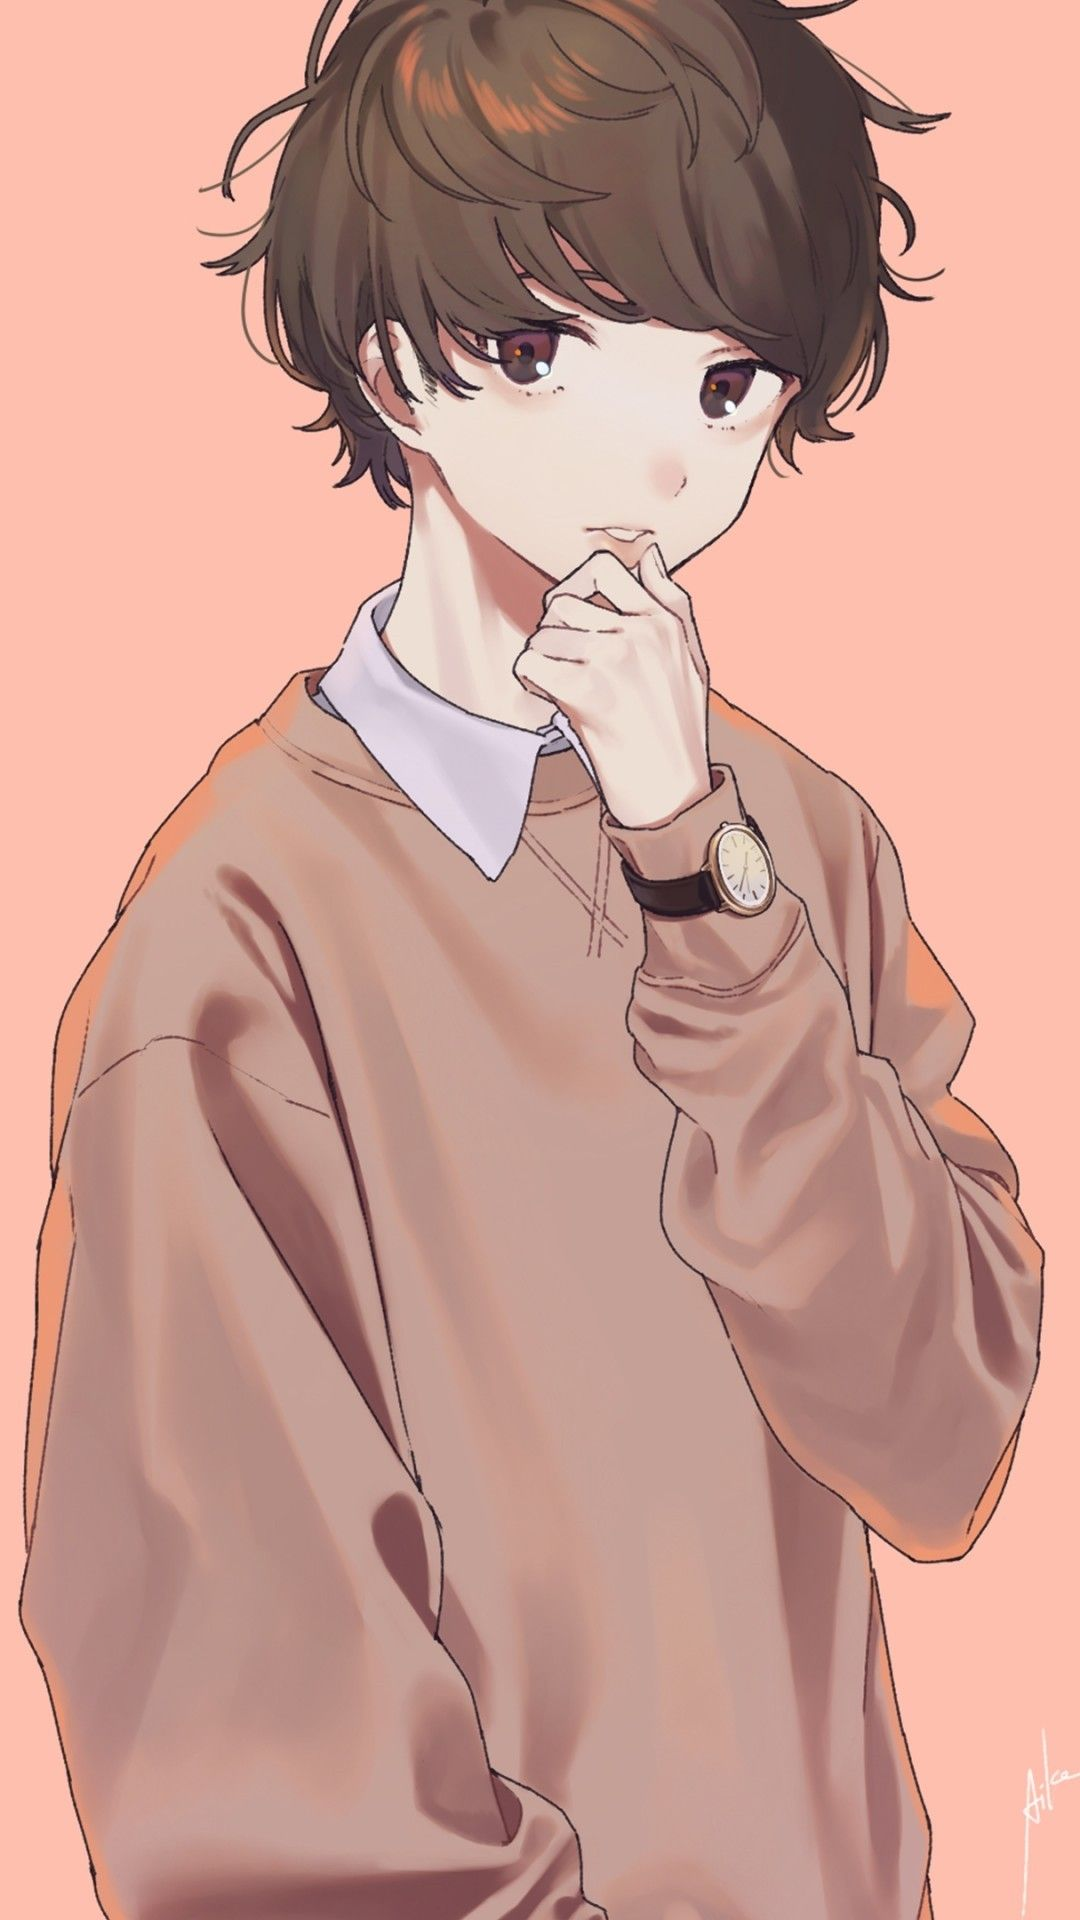 Cute Boy Anime Pictures : anime, pictures, Anime, Phone, Wallpapers, Backgrounds, WallpaperAccess